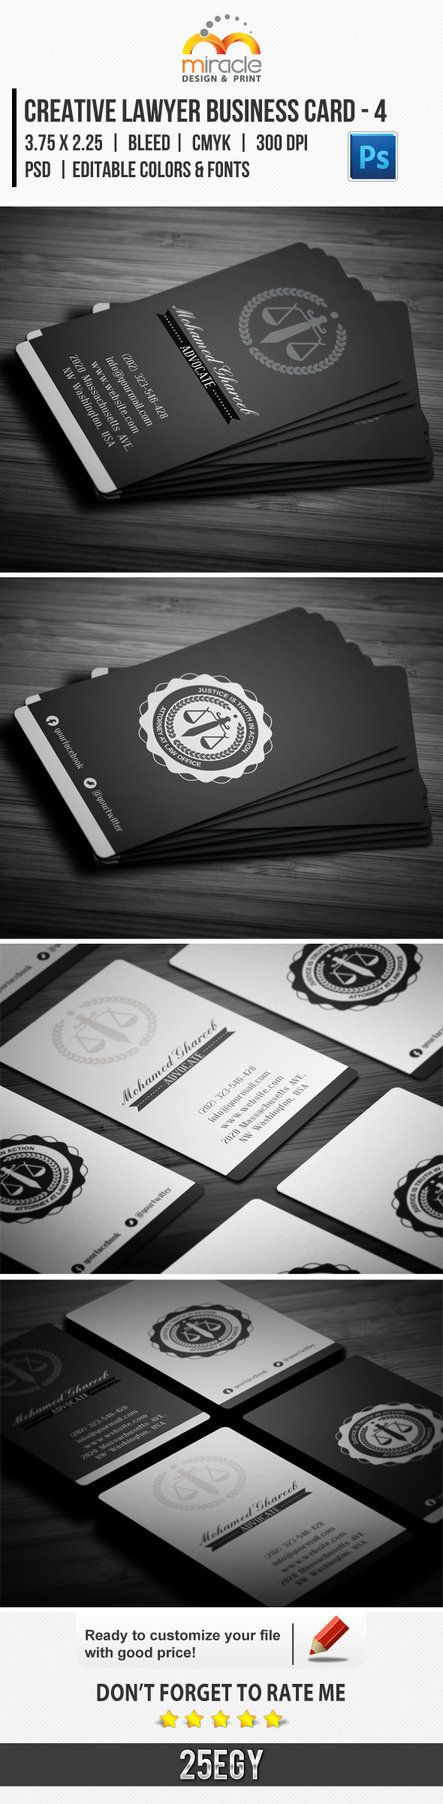 Creative Lawyer Business Card #4 by EgYpToS